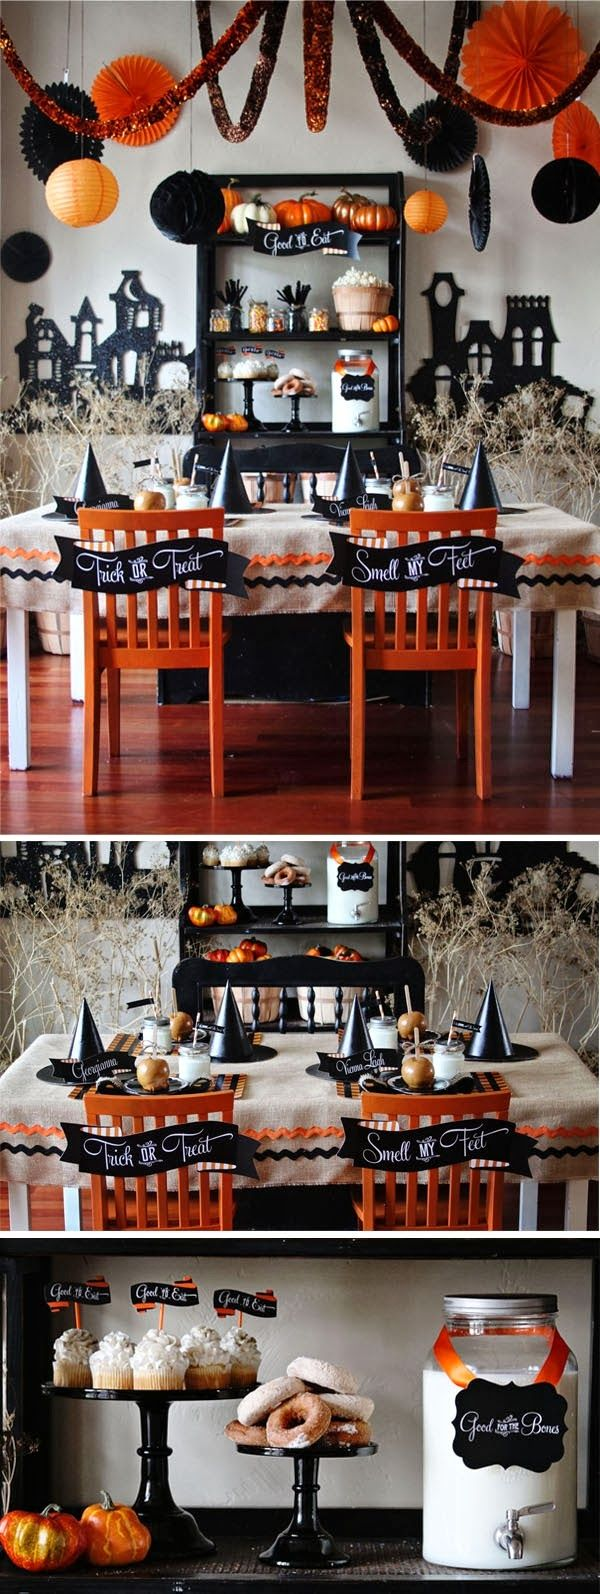 72 best Halloween Ideas images on Pinterest Halloween decorations - Halloween Table Decorations Pinterest